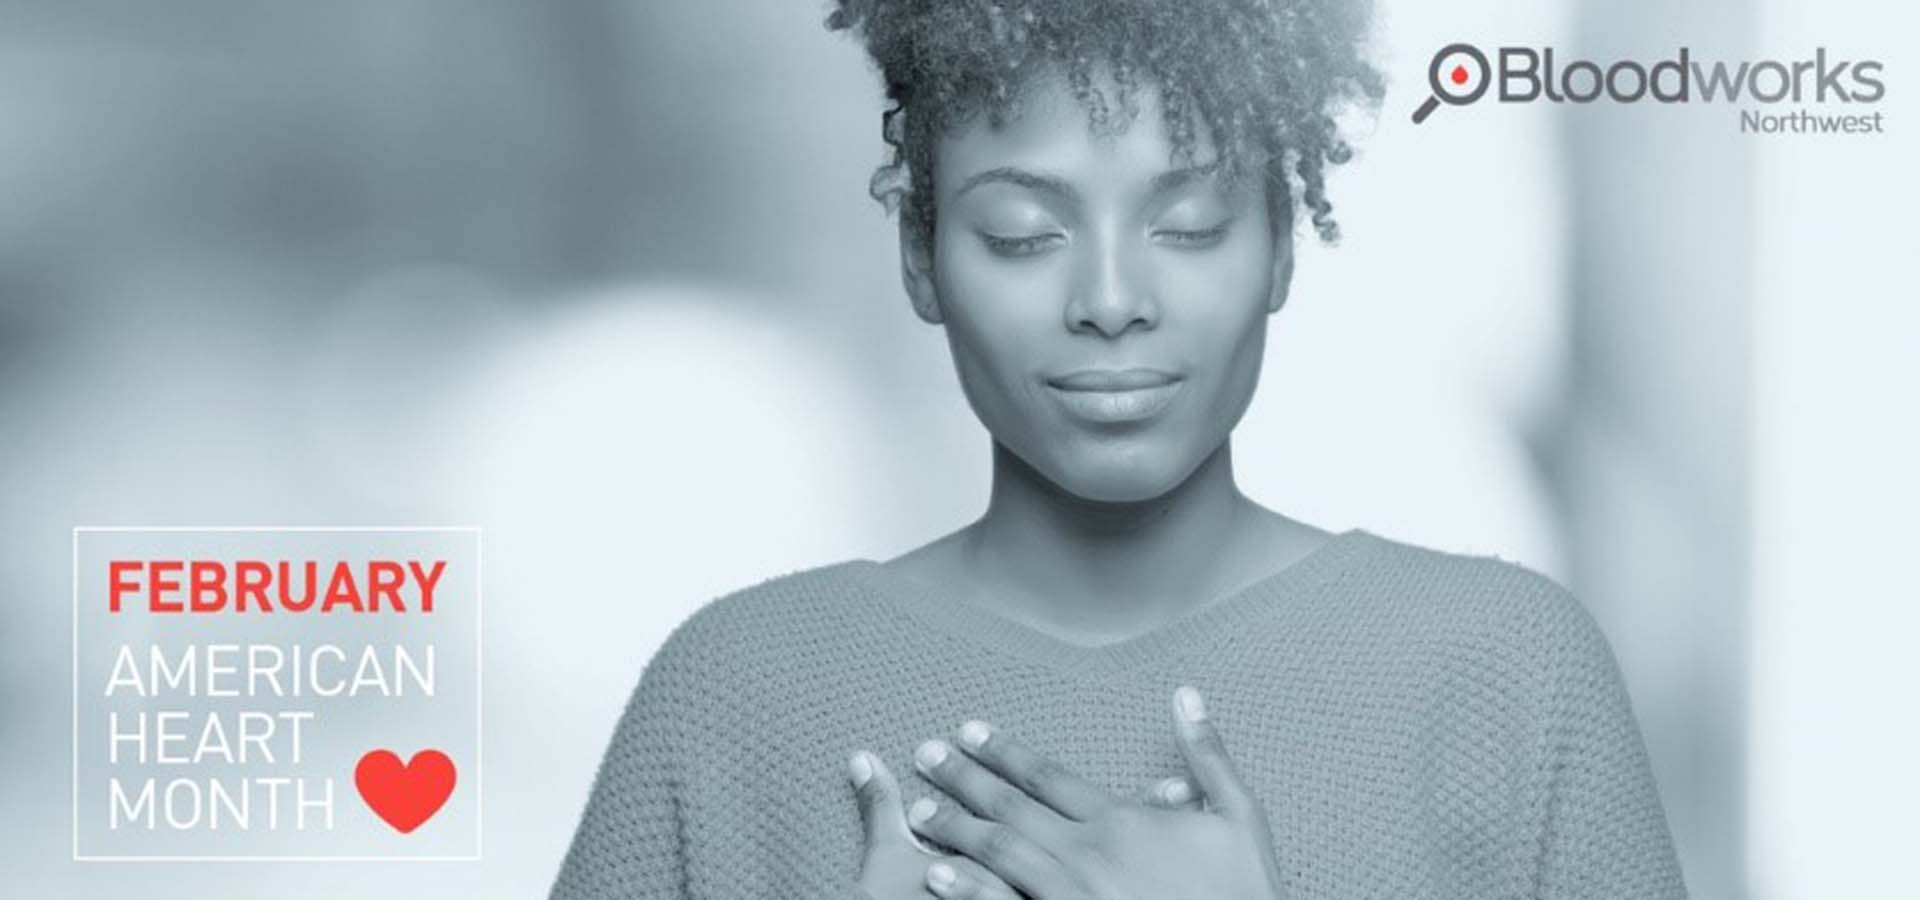 Black and white photo of a woman with her hand over her heart; for February Heart Month.